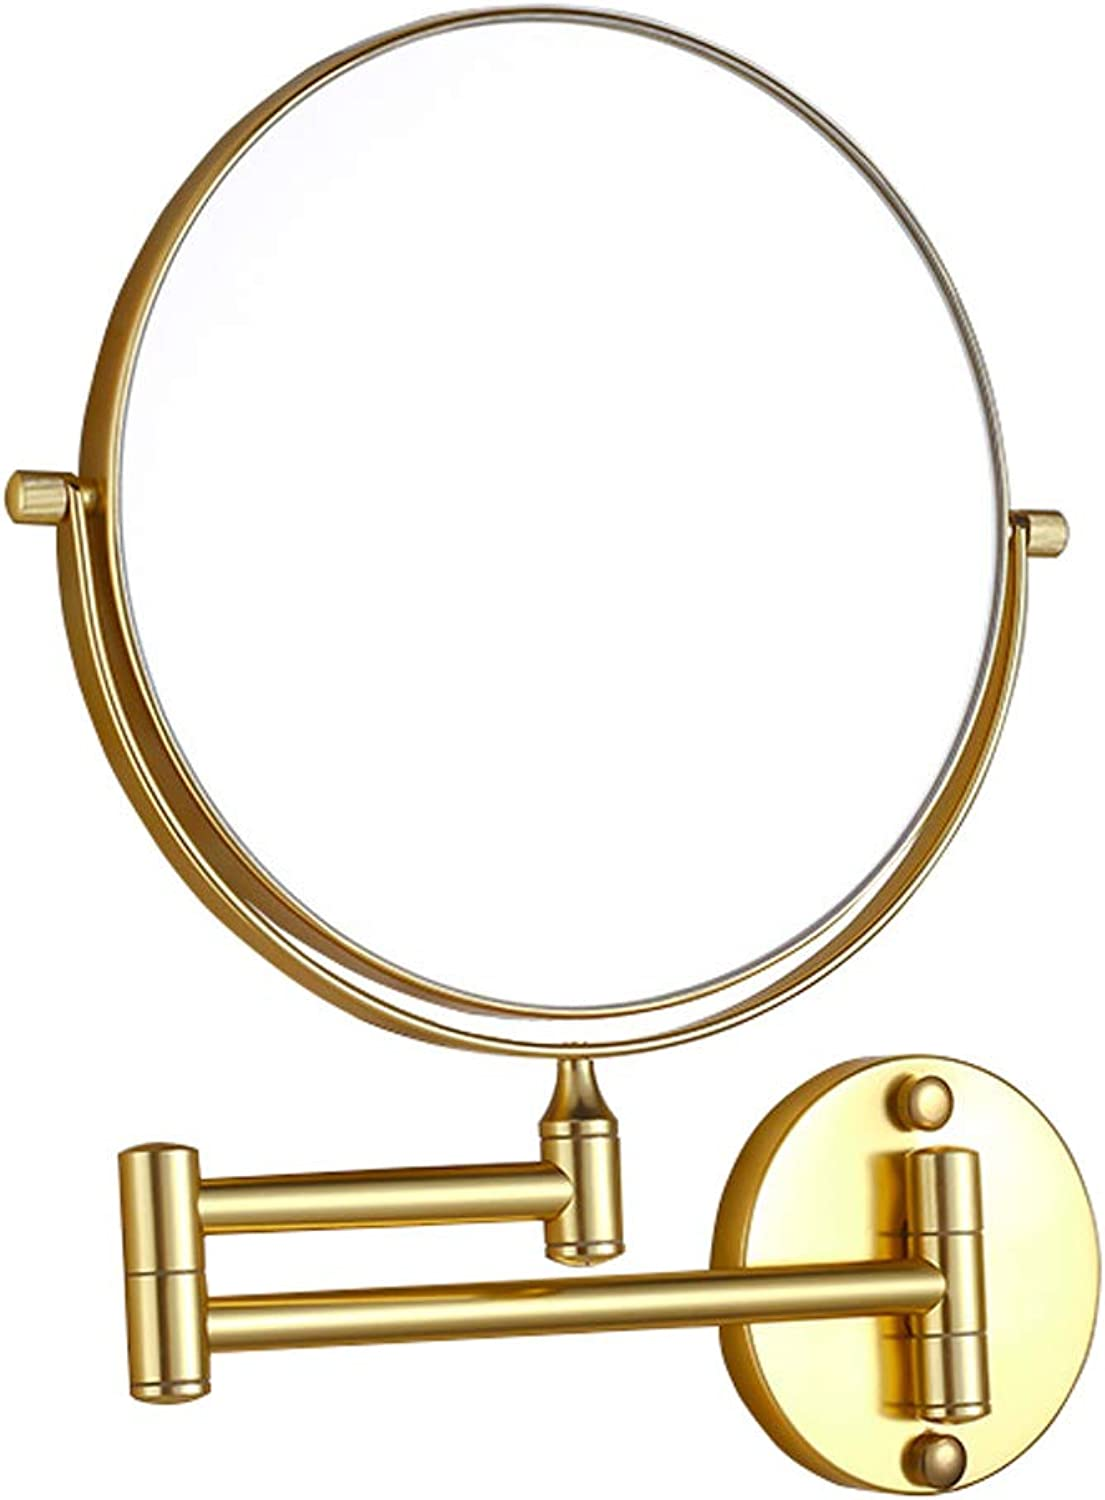 Wall Mounted Vanity Mirror - with 3X Magnification 2-Sided Swivel Shaving Bathroom Makeup Bedroom Decorative Mirror gold   8-inch